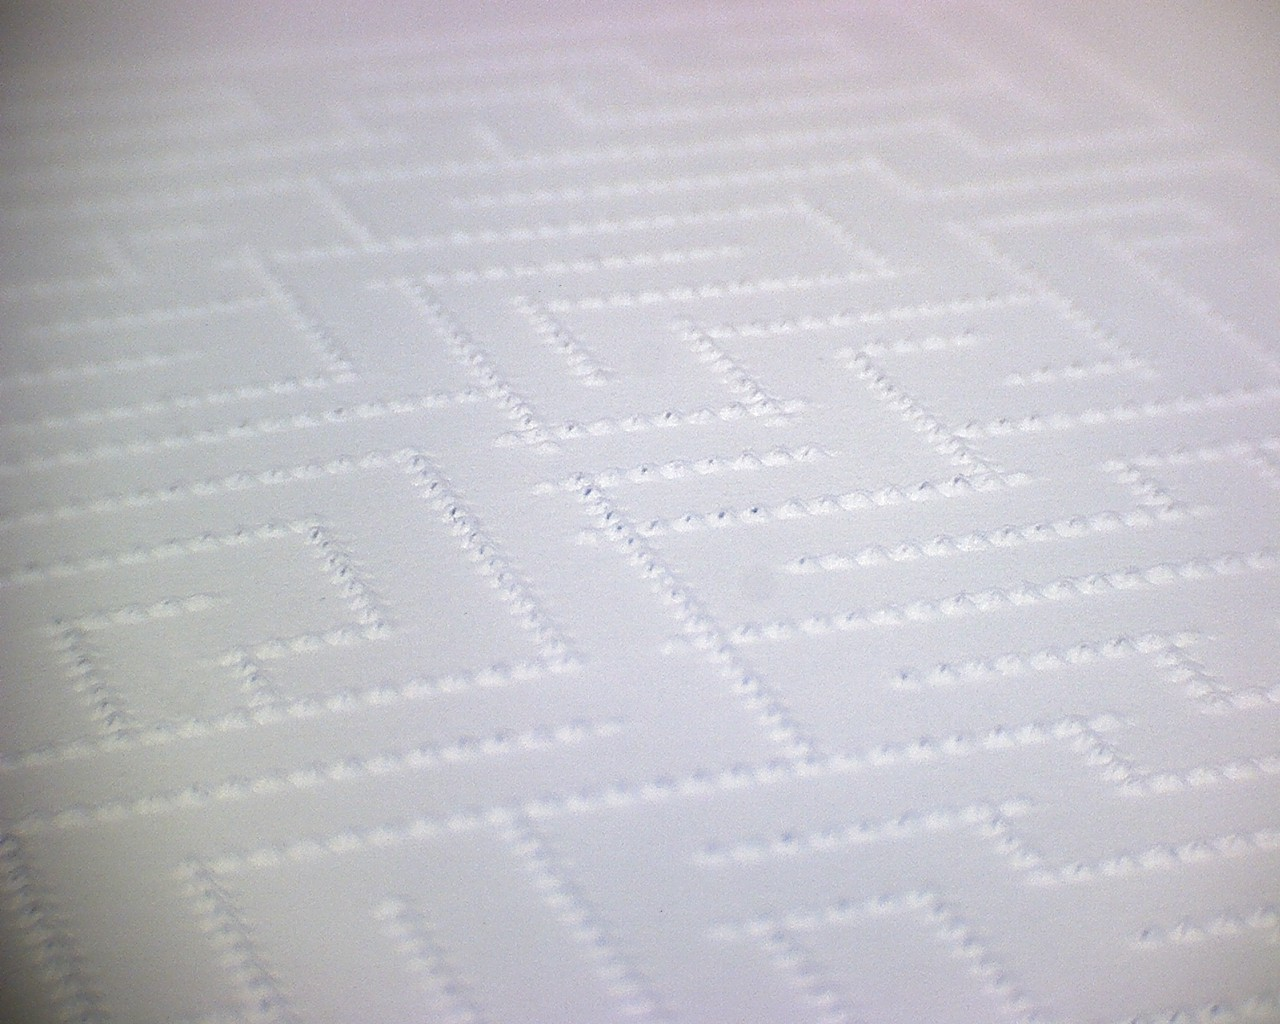 Braille embossed graphics | Teiresias Centre of MU